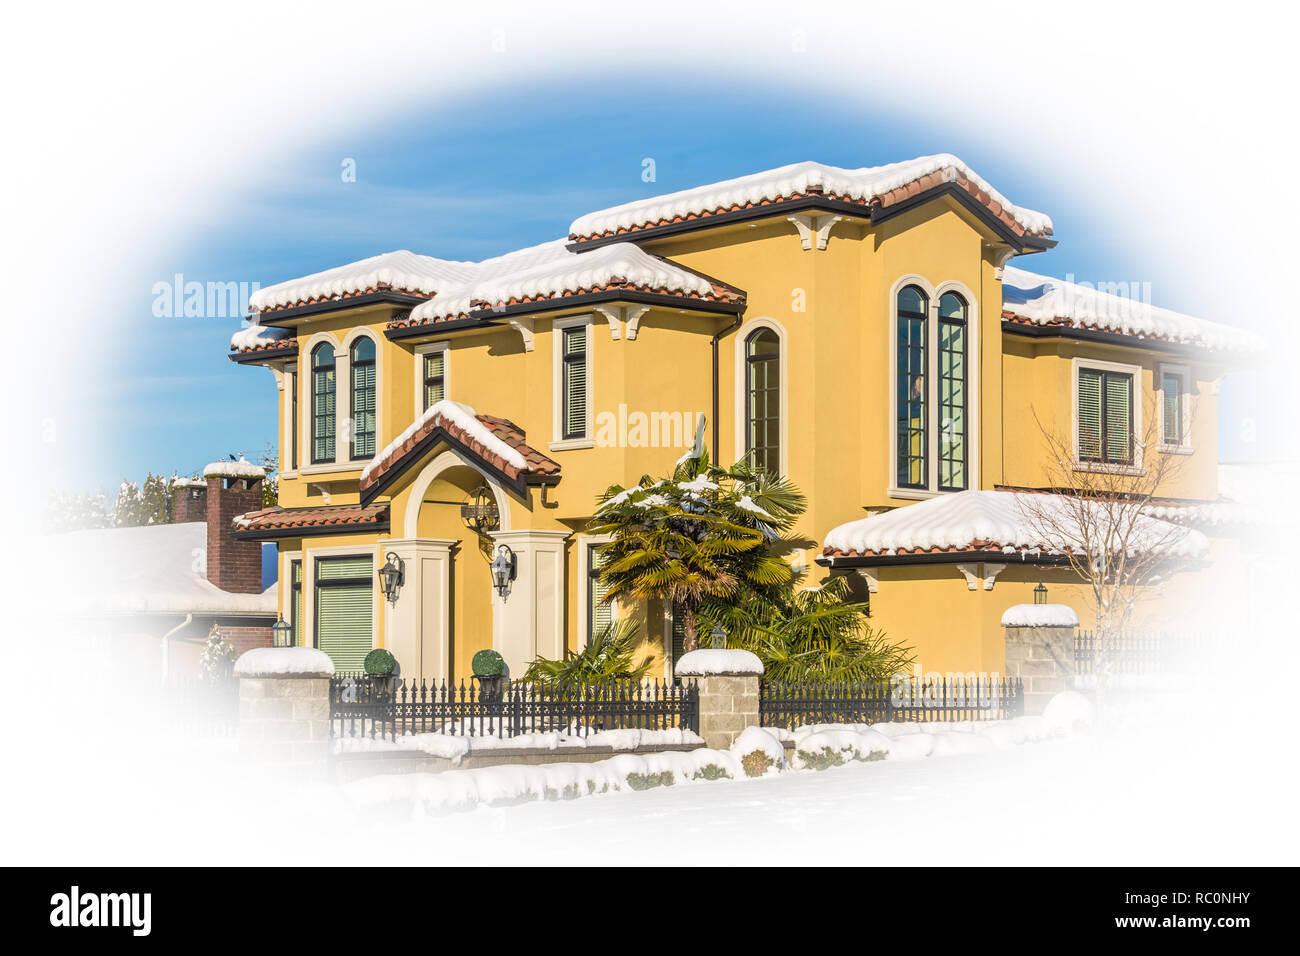 Luxurious residential house in snow on winter sunny day in Canada - Stock Image